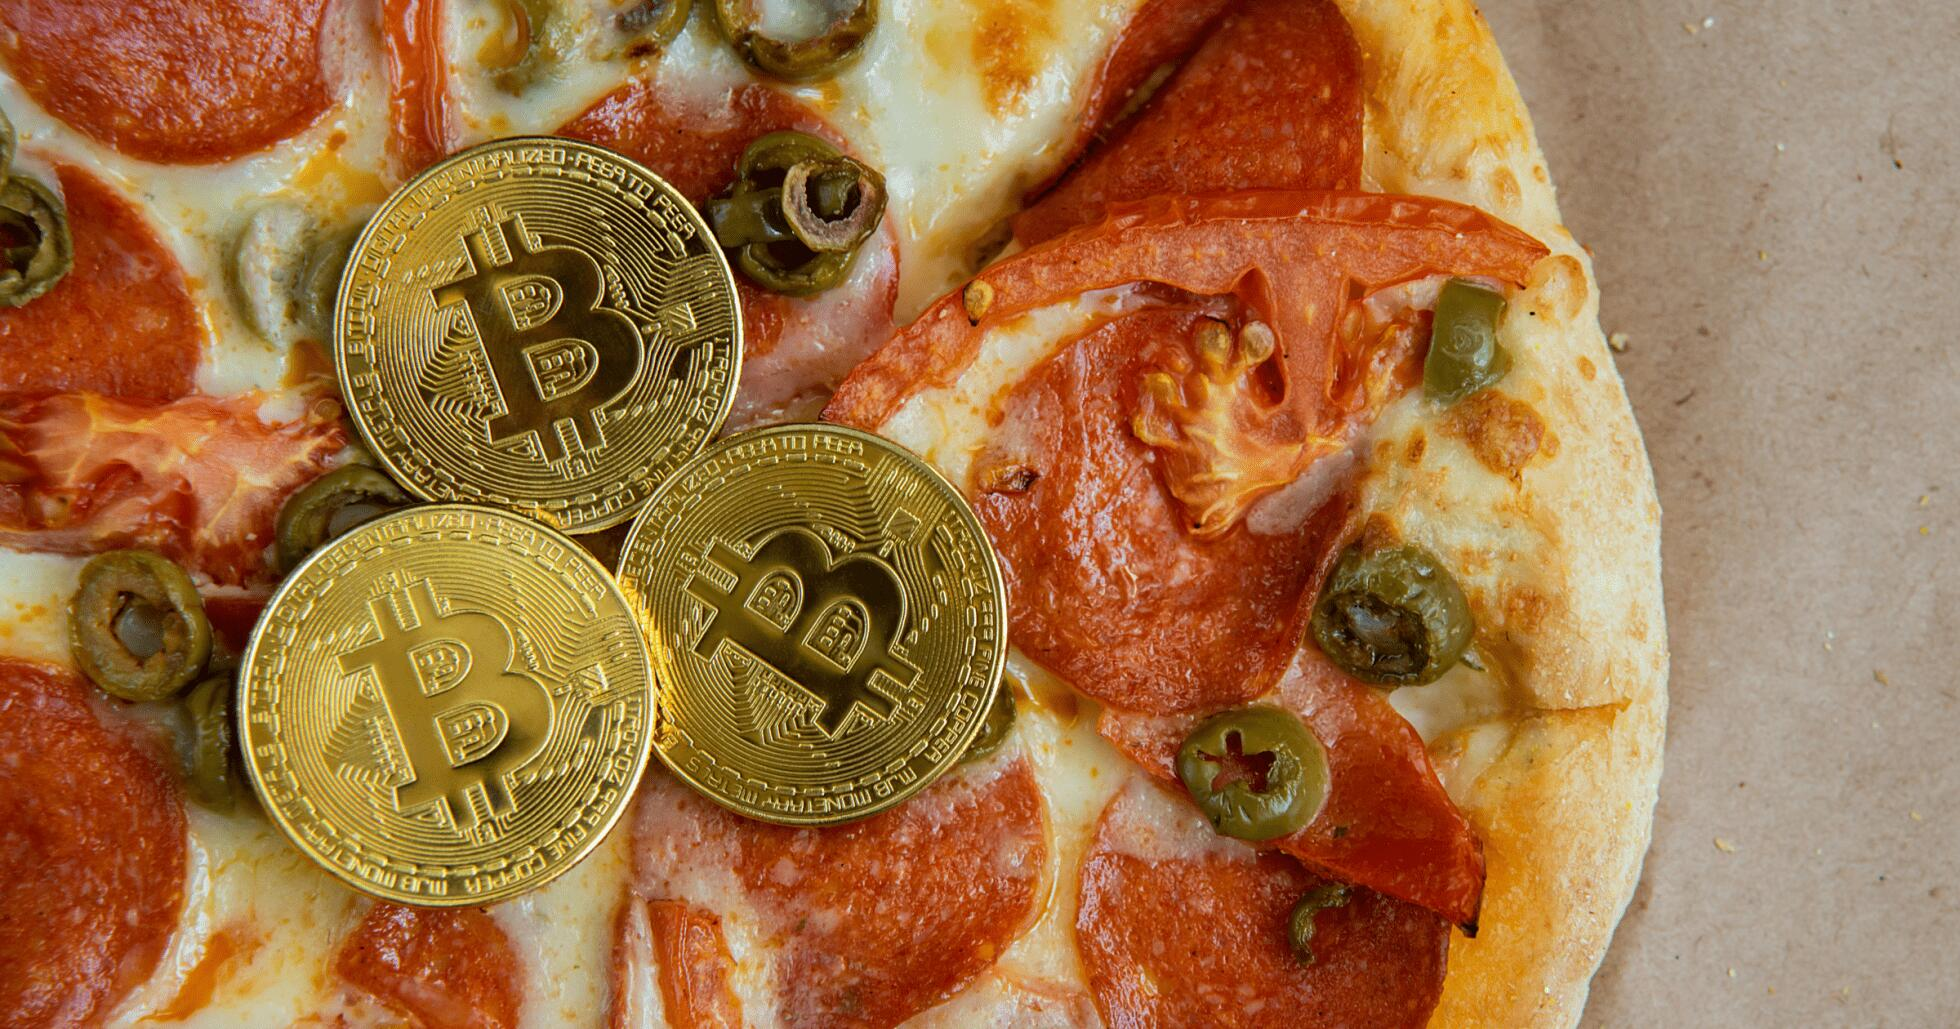 What is Bitcoin pizza?